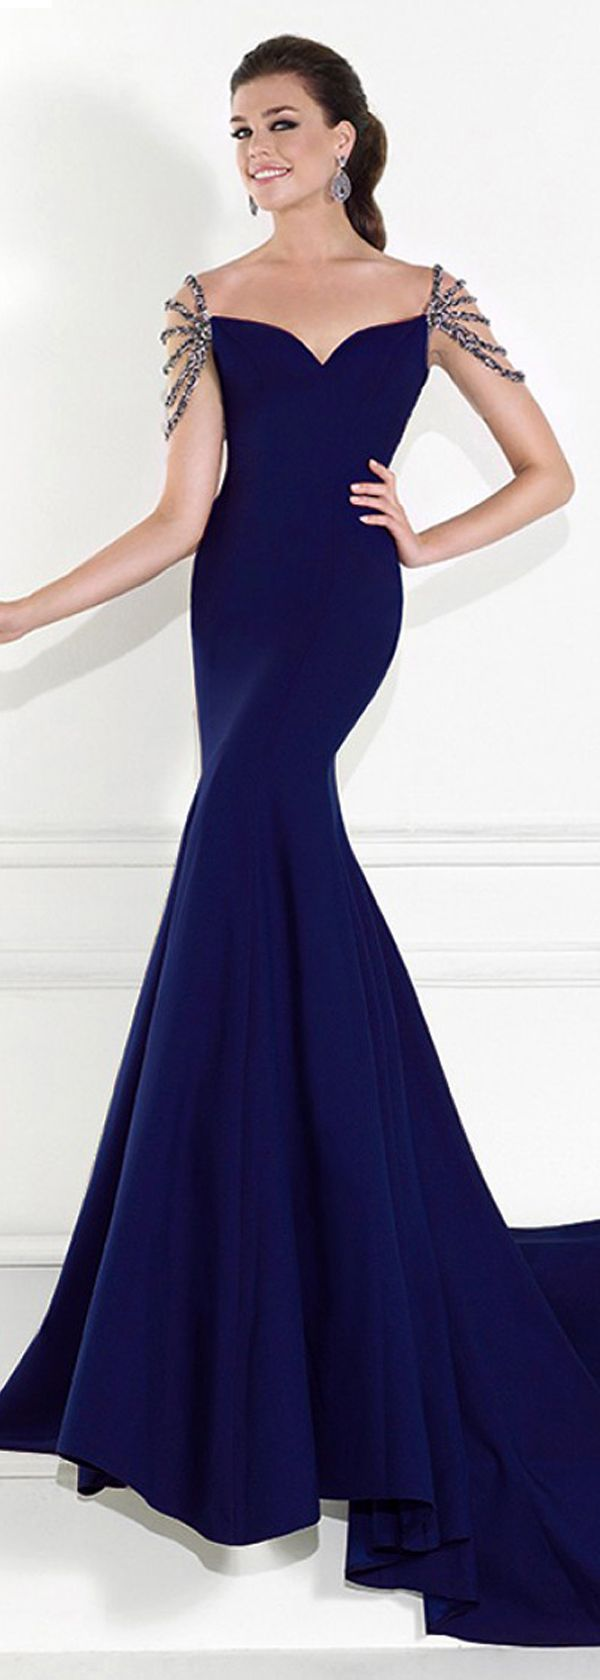 Amazing Mermaid Stretch Satin Sweetheart Neckline Floor-length Evening Dresses with Beadings and Rhinestones